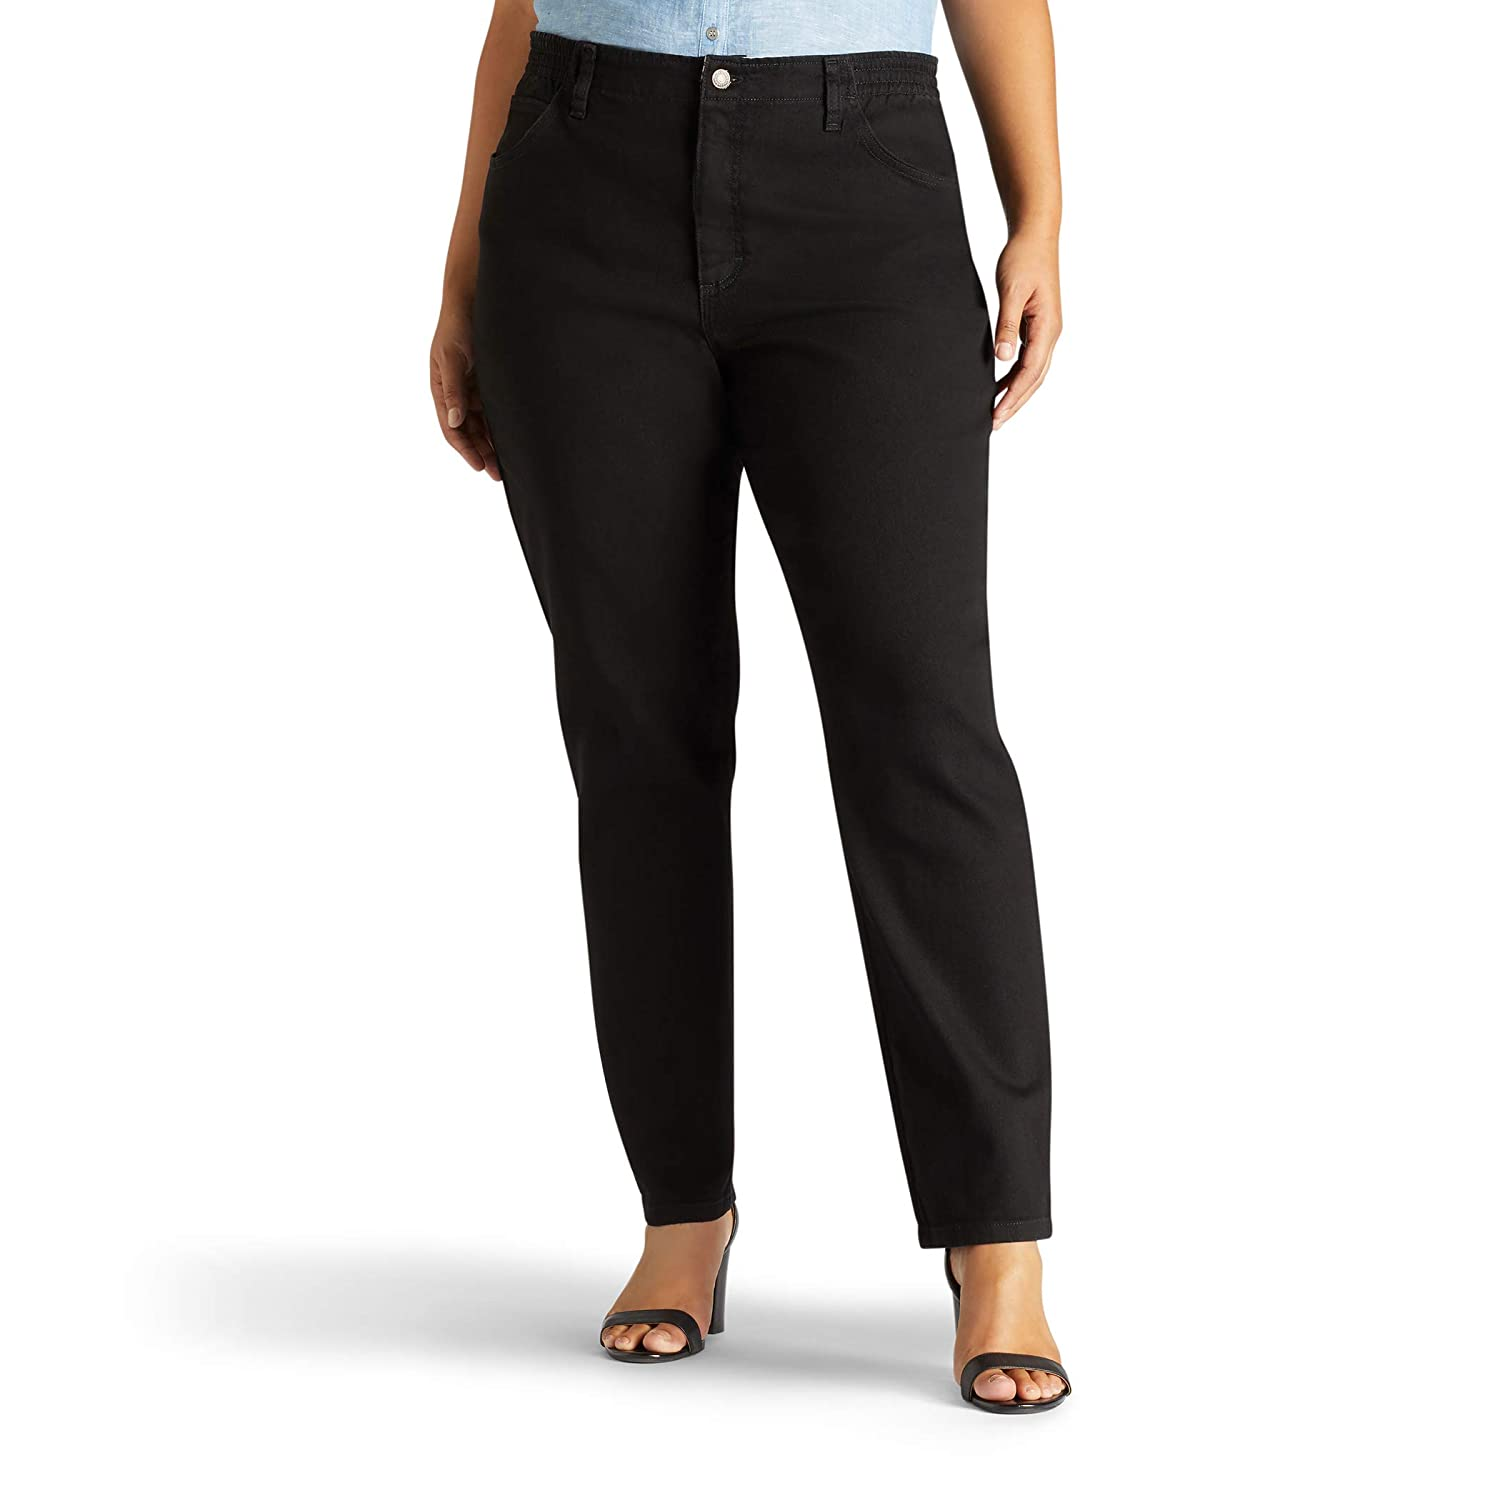 63c08d0b LEE Women's Plus Size Relaxed-fit Elastic-Waist Jean at Amazon Women's  Clothing store: